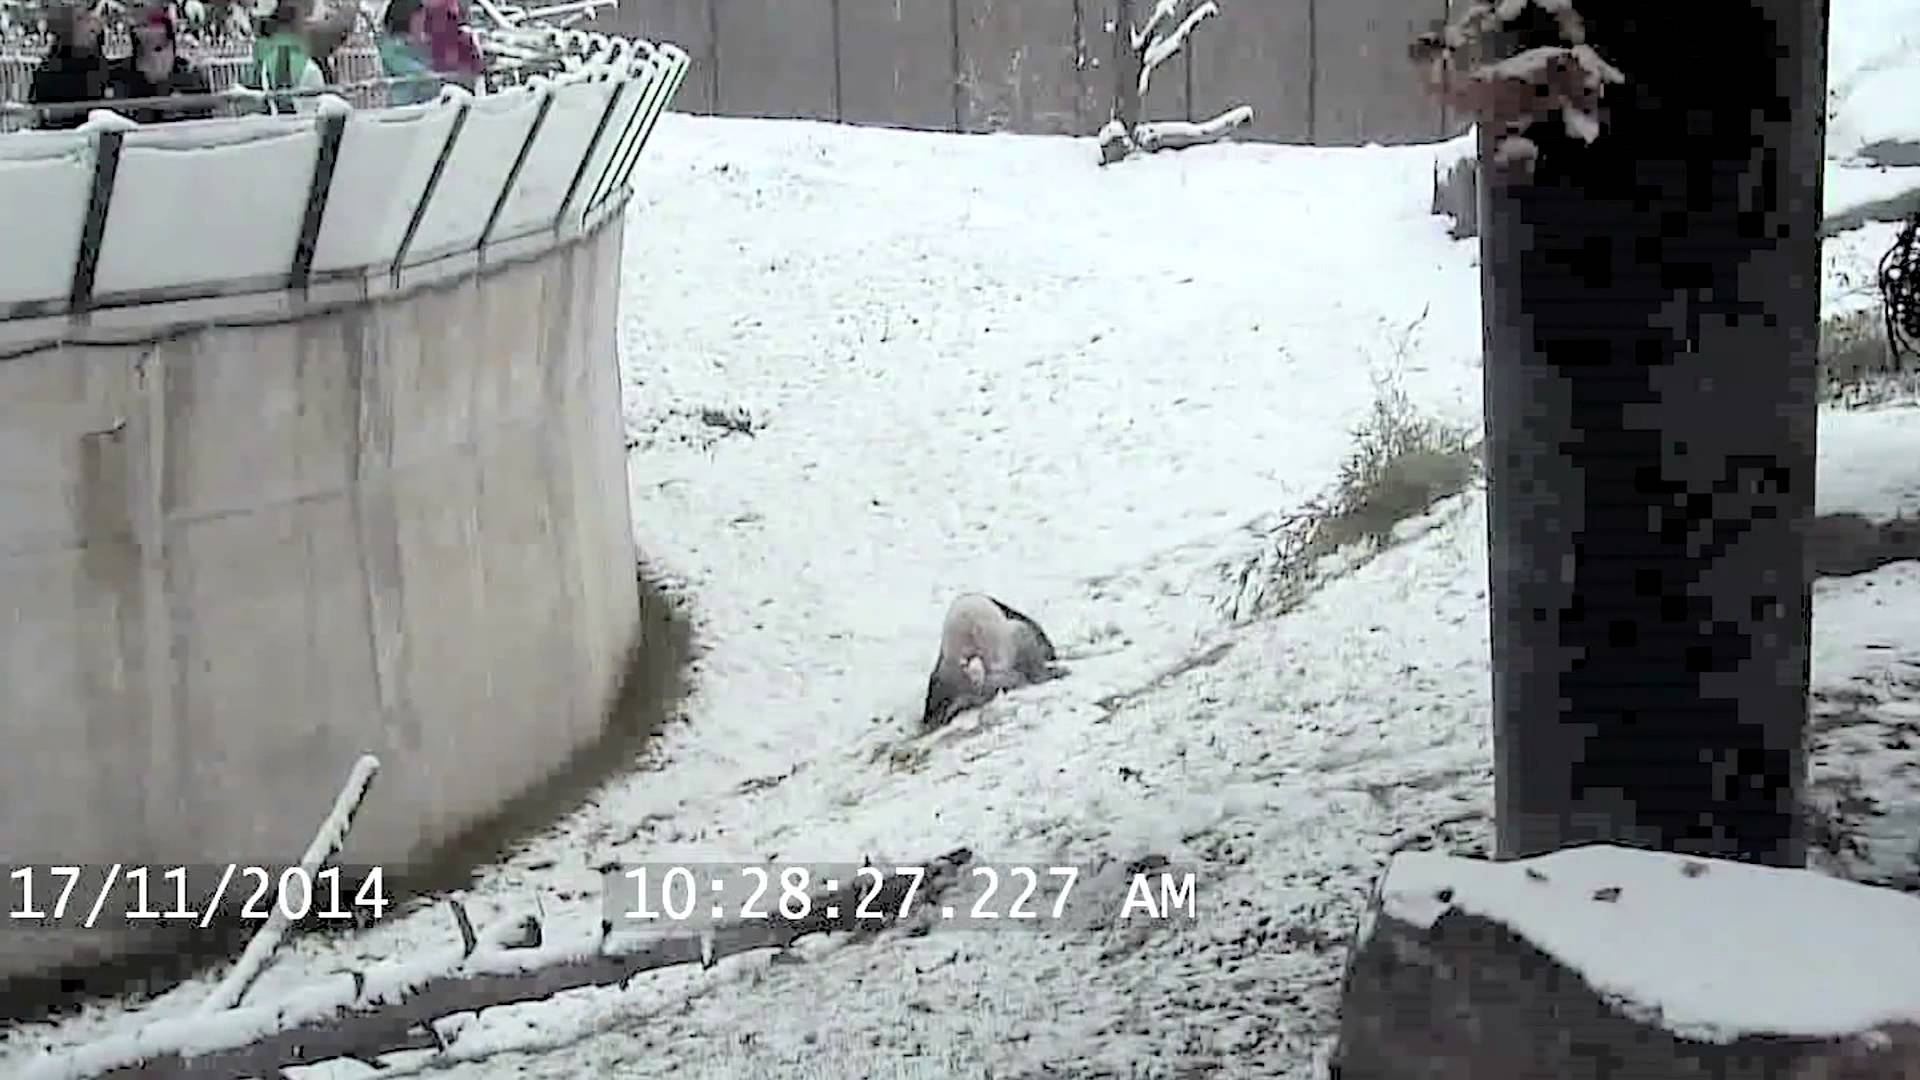 Giant Panda Repeatedly Rolls Himself Down a Snowy Hill at the Toronto Zoo